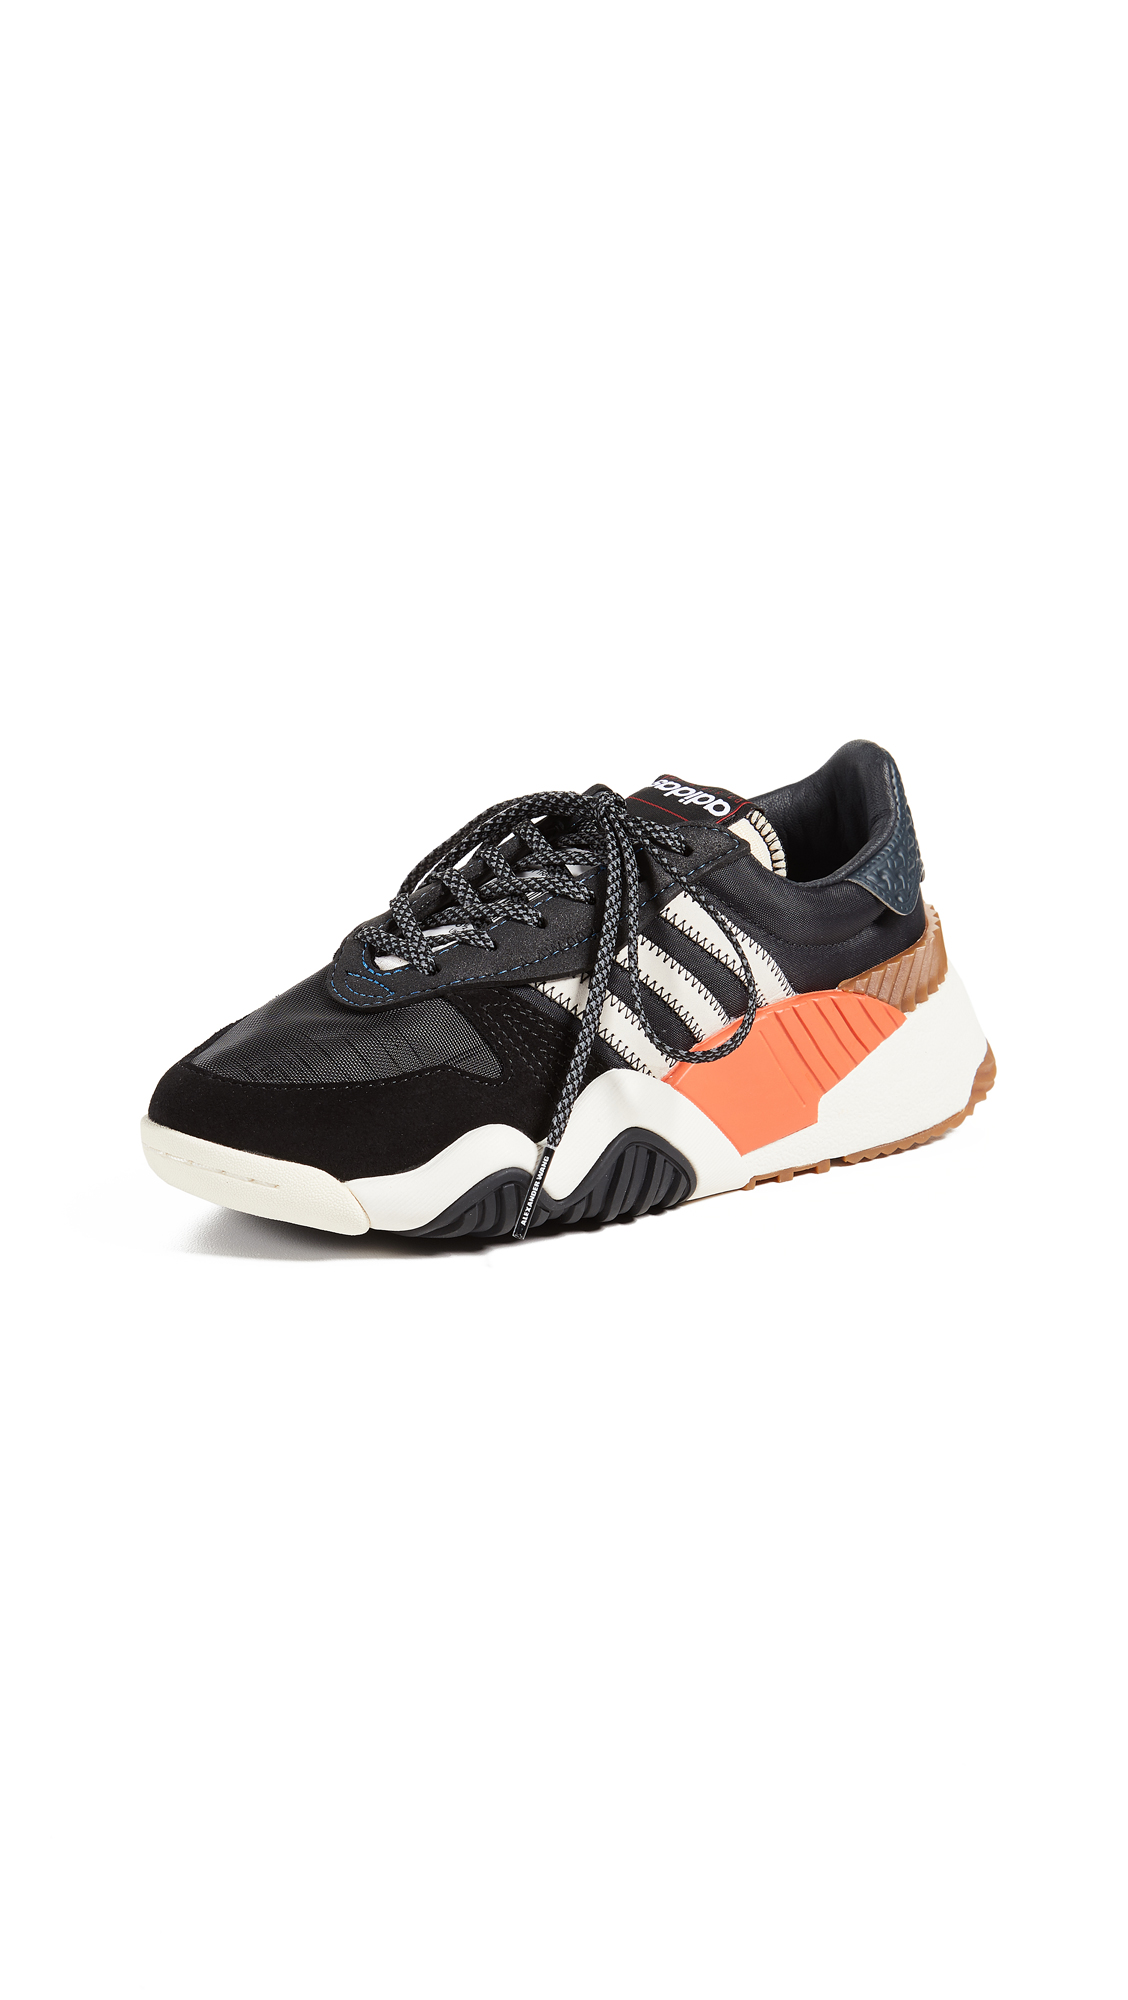 adidas Originals by Alexander Wang AW Turnout Trainers - Core Black/Core White/Borang